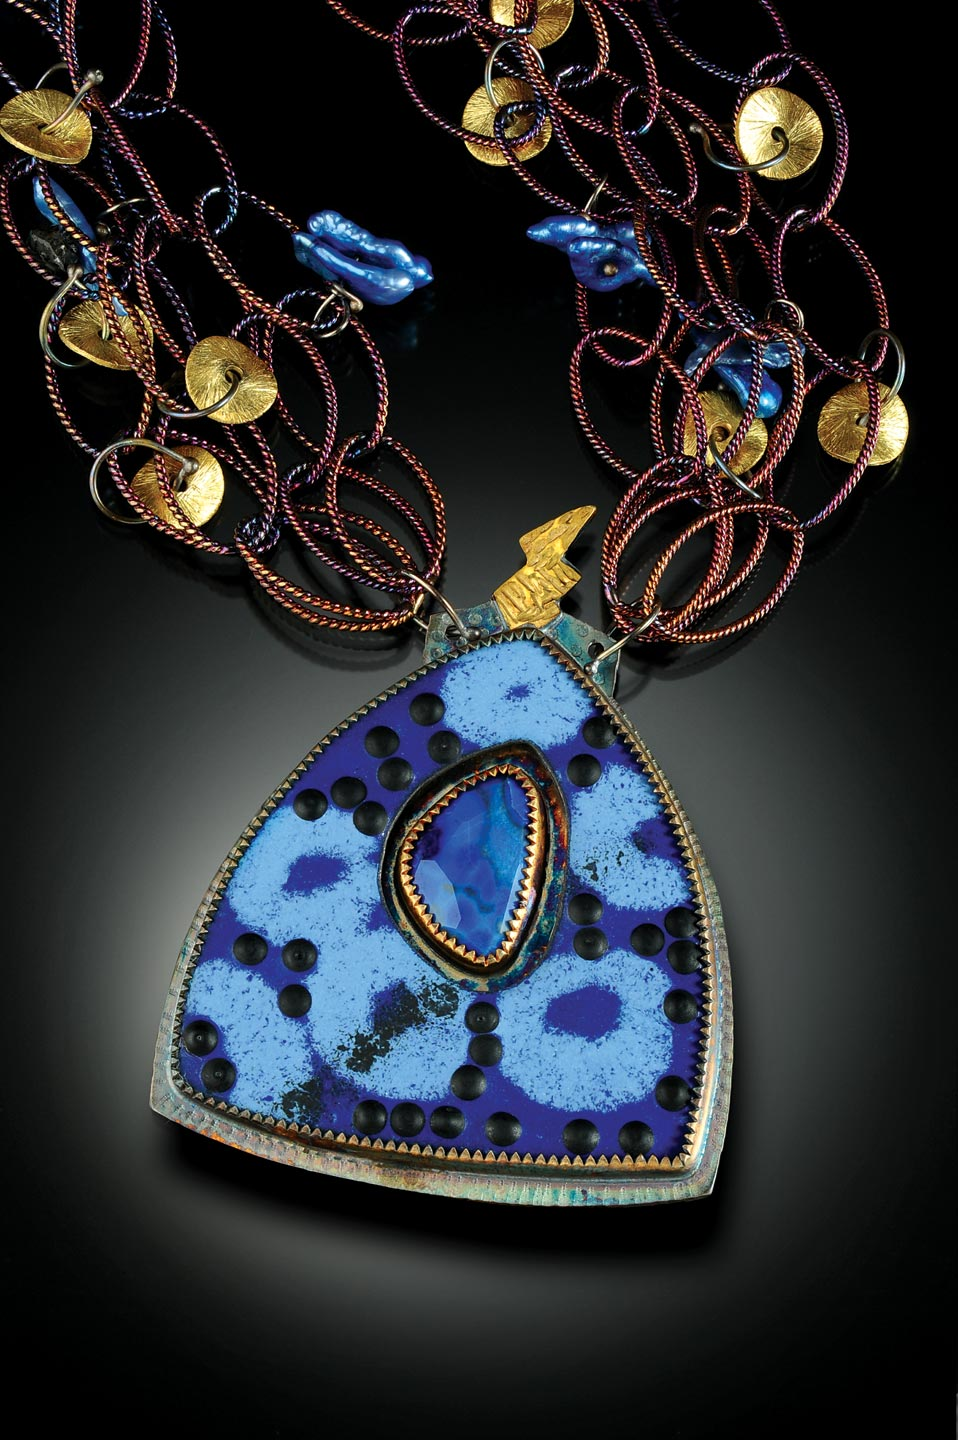 "NECKLACE of sterling silver, twenty-two karat gold, faceted lapis and enamel; pendant 3.81 x 5.08 centimeters; necklace 55.88 centimeters long, 2015.  ""The lightning bolt on top reaching to the sky was my inspiration."""